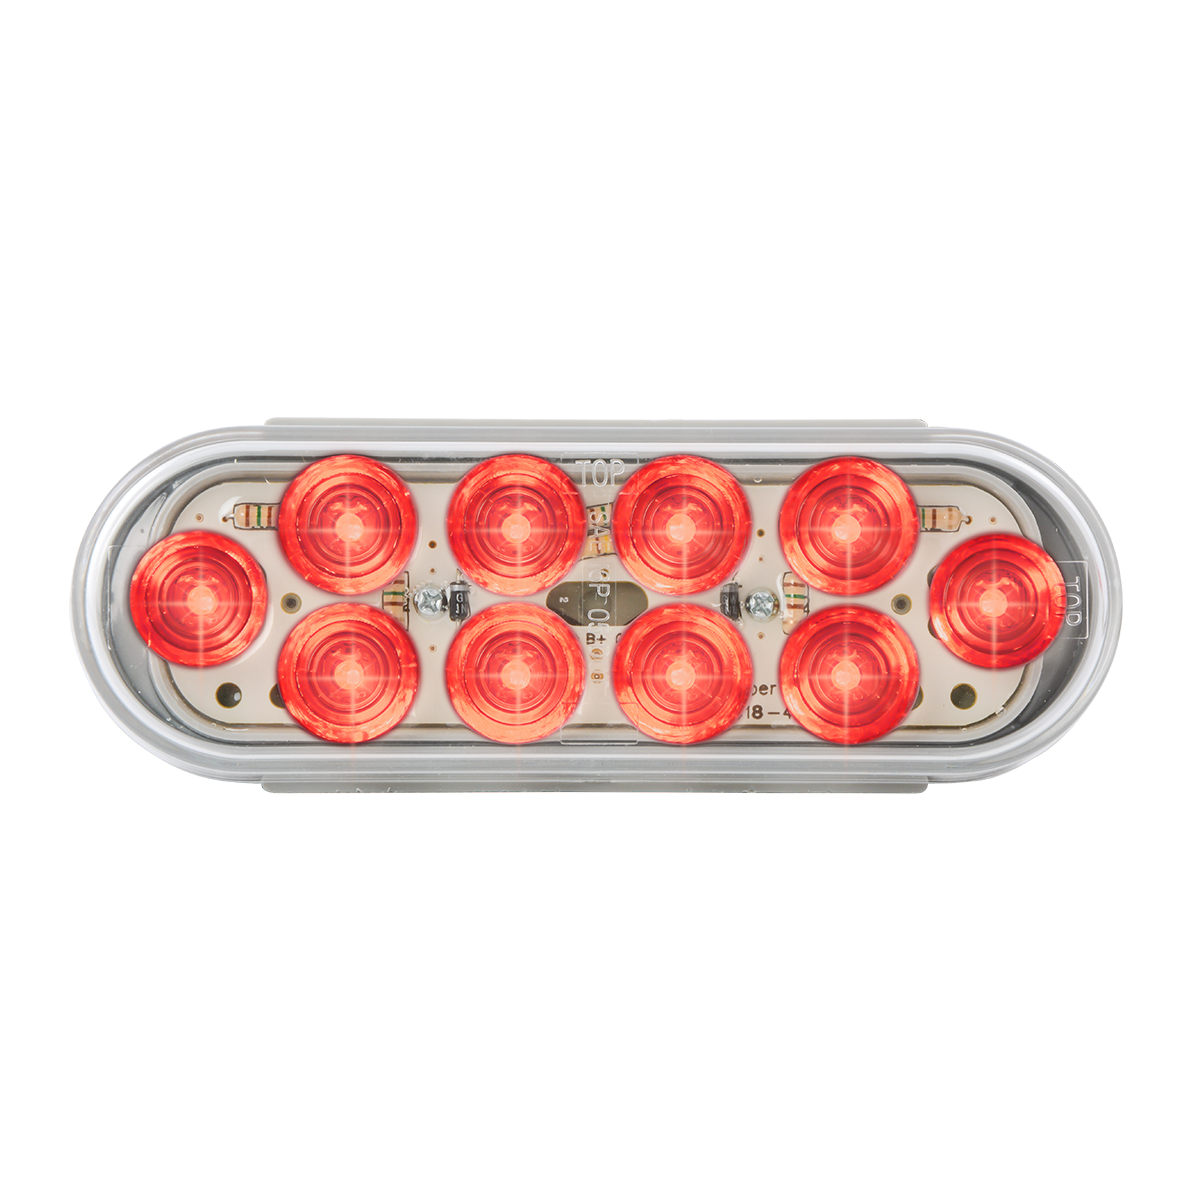 77443 Oval Mega 10 LED Light in Red/Clear